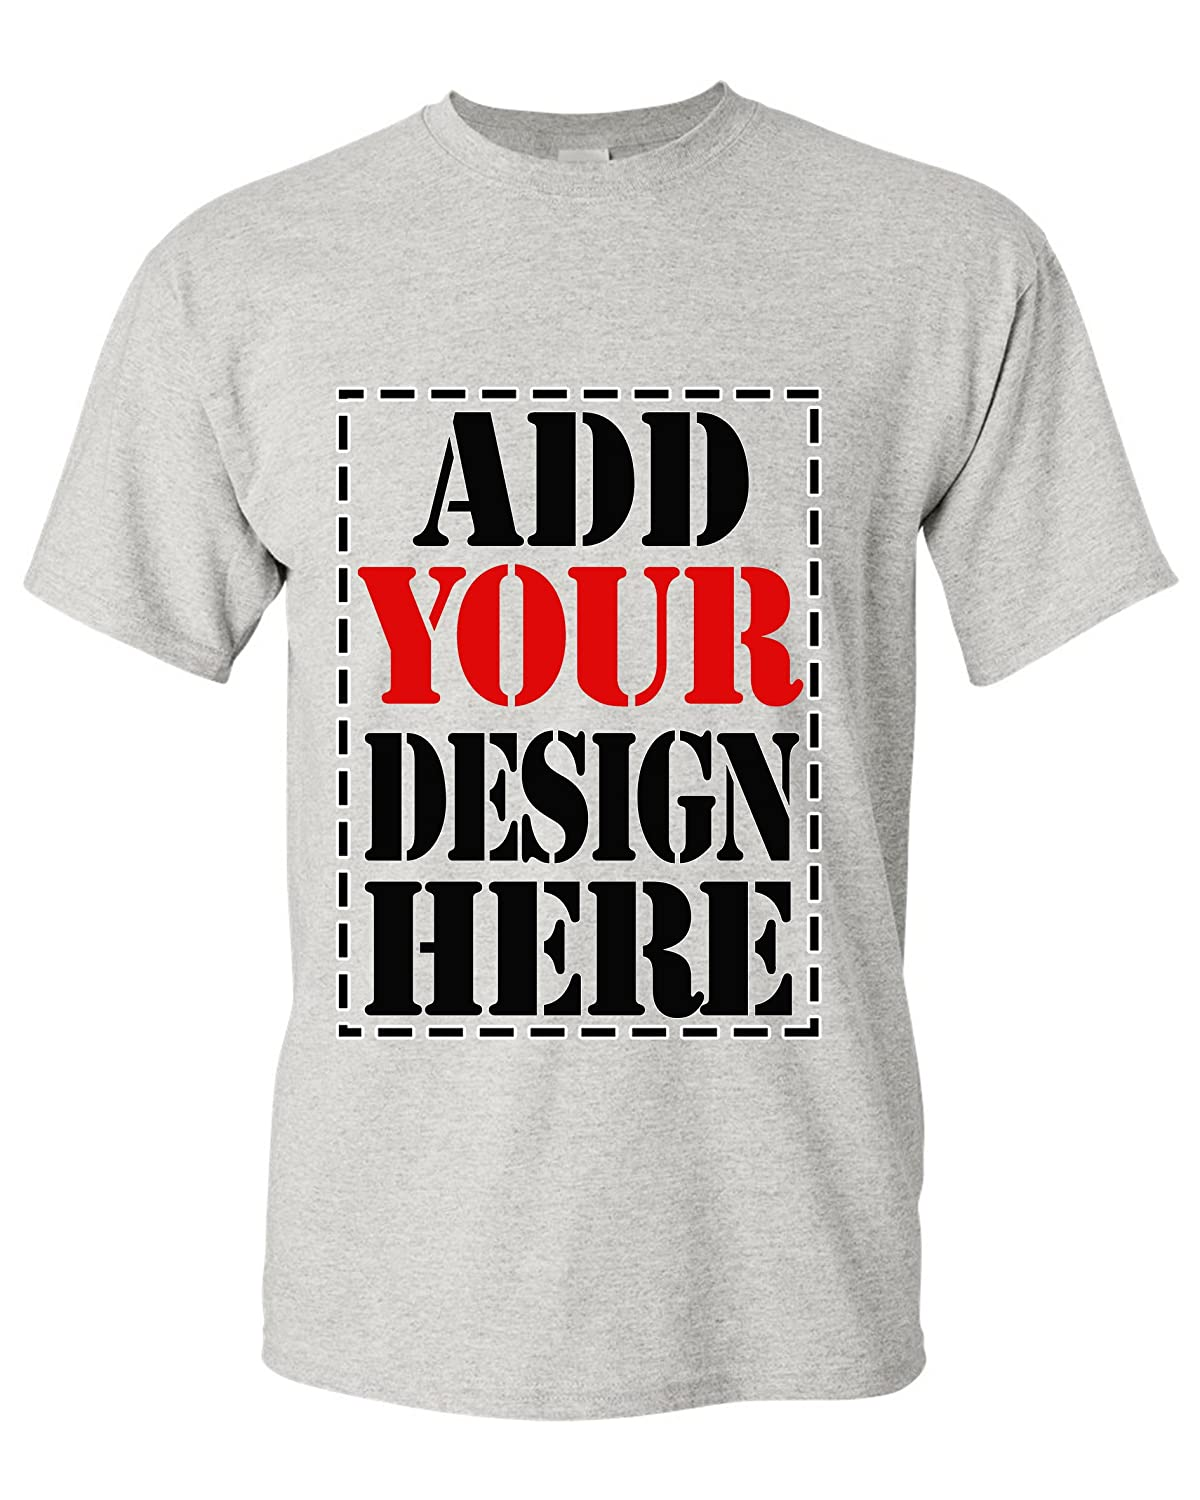 6e98f5c9 Chinabrands.com: Dropshipping & Wholesale cheap Design Your Own Shirt  Customized T-Shirt - Add Your Picture online.